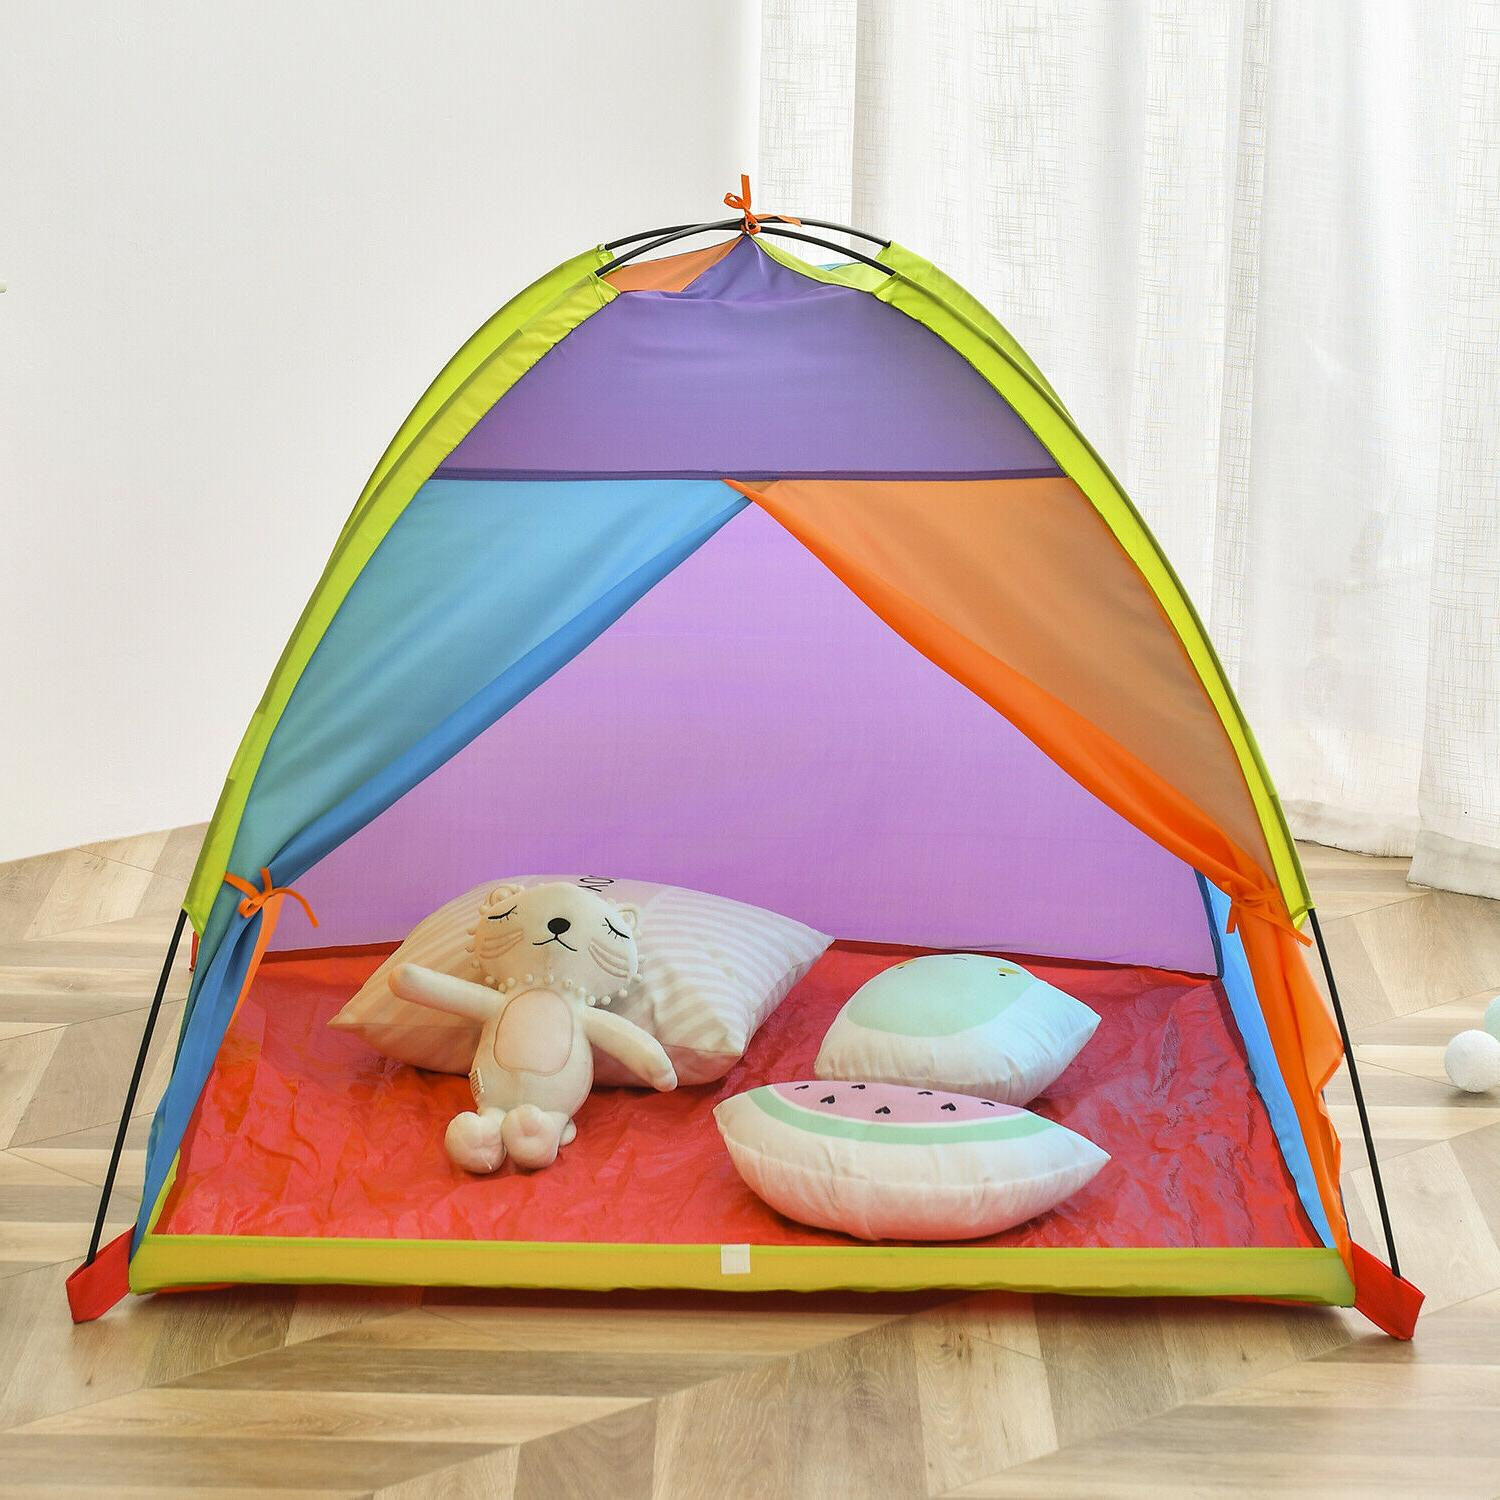 Kids Tents Indoor Play Toddler Tent Playhouse